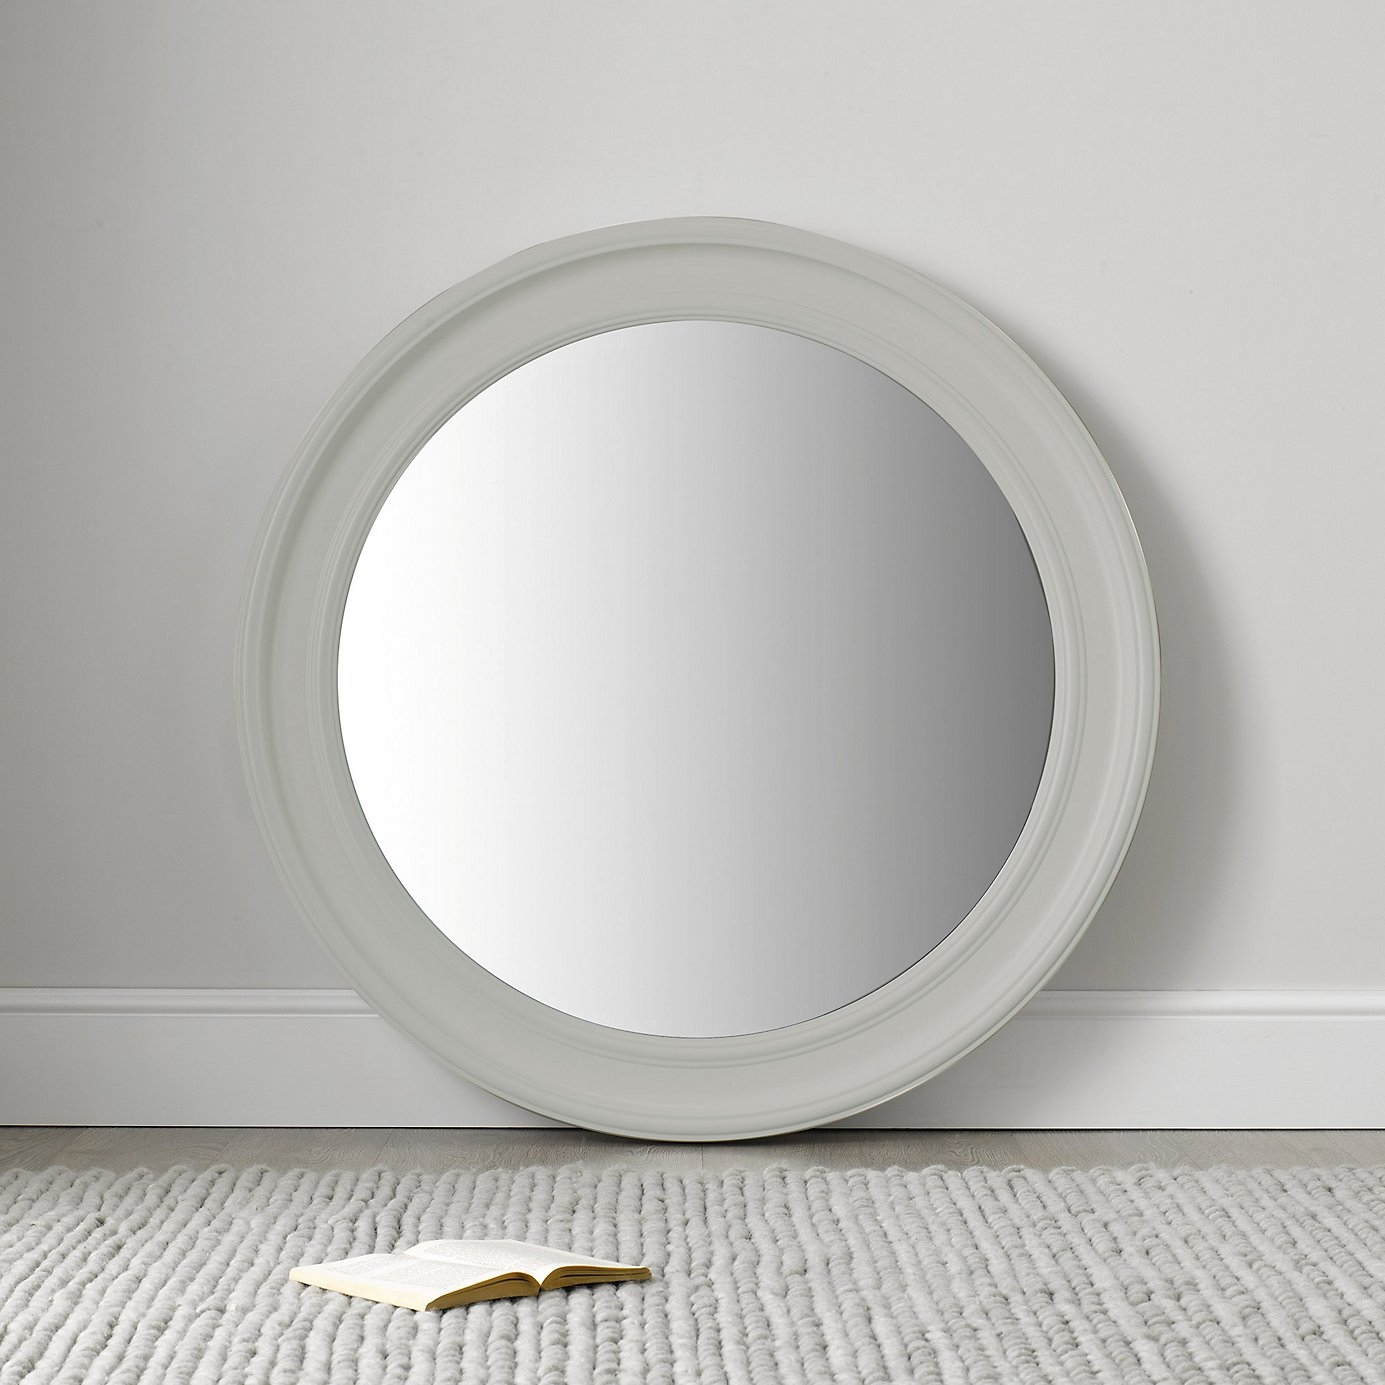 15 Best Collection Of White Round Mirror Mirror Ideas